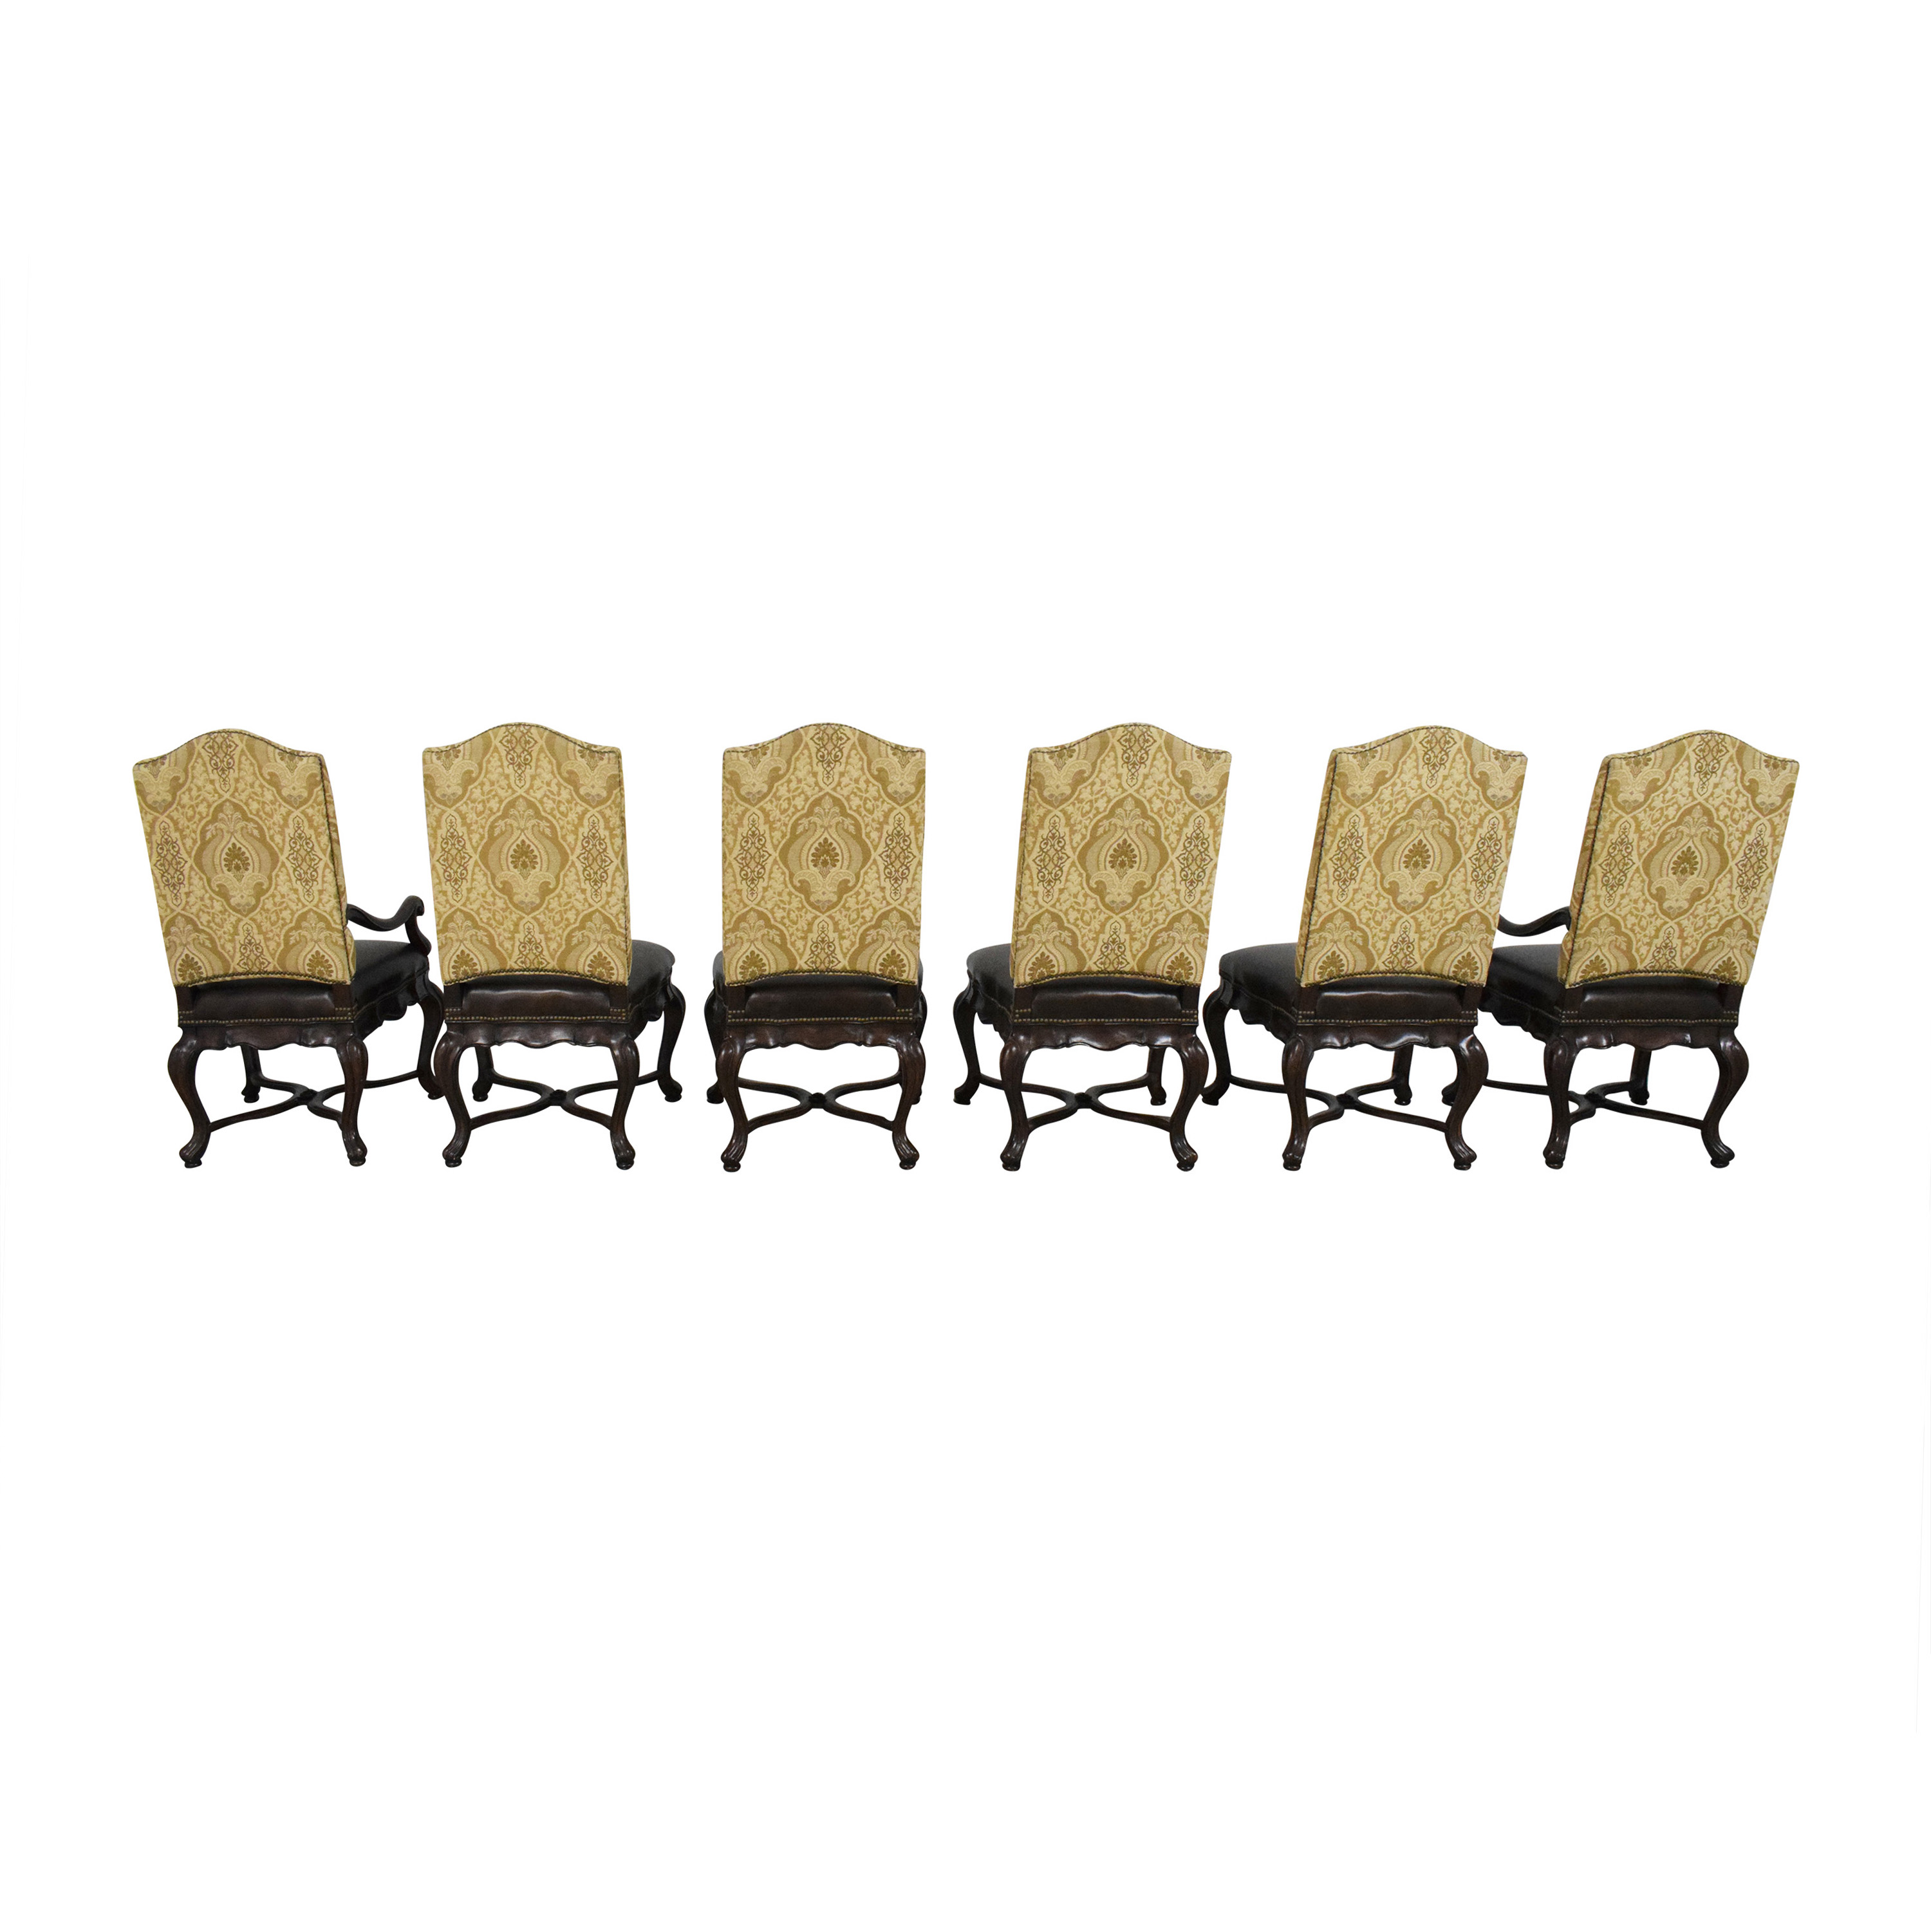 Thomasville Thomasville Hills of Tuscany Dining Chairs ma